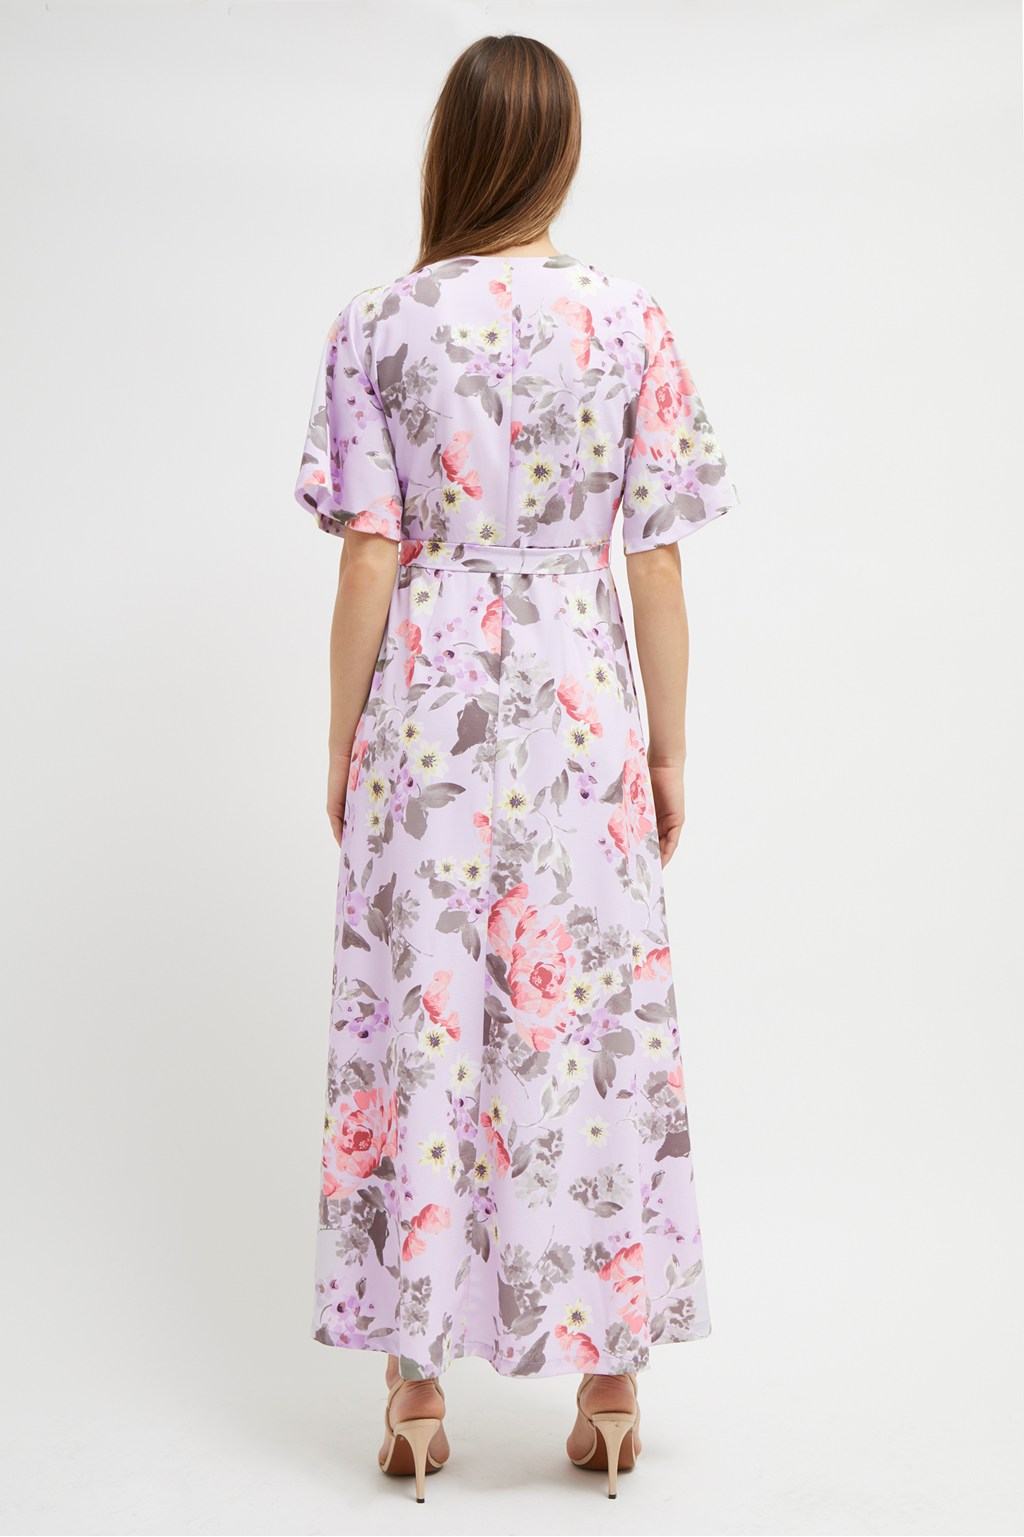 5b7db9801c ... Armoise Crepe Floral Maxi Wrap Dress. loading images.